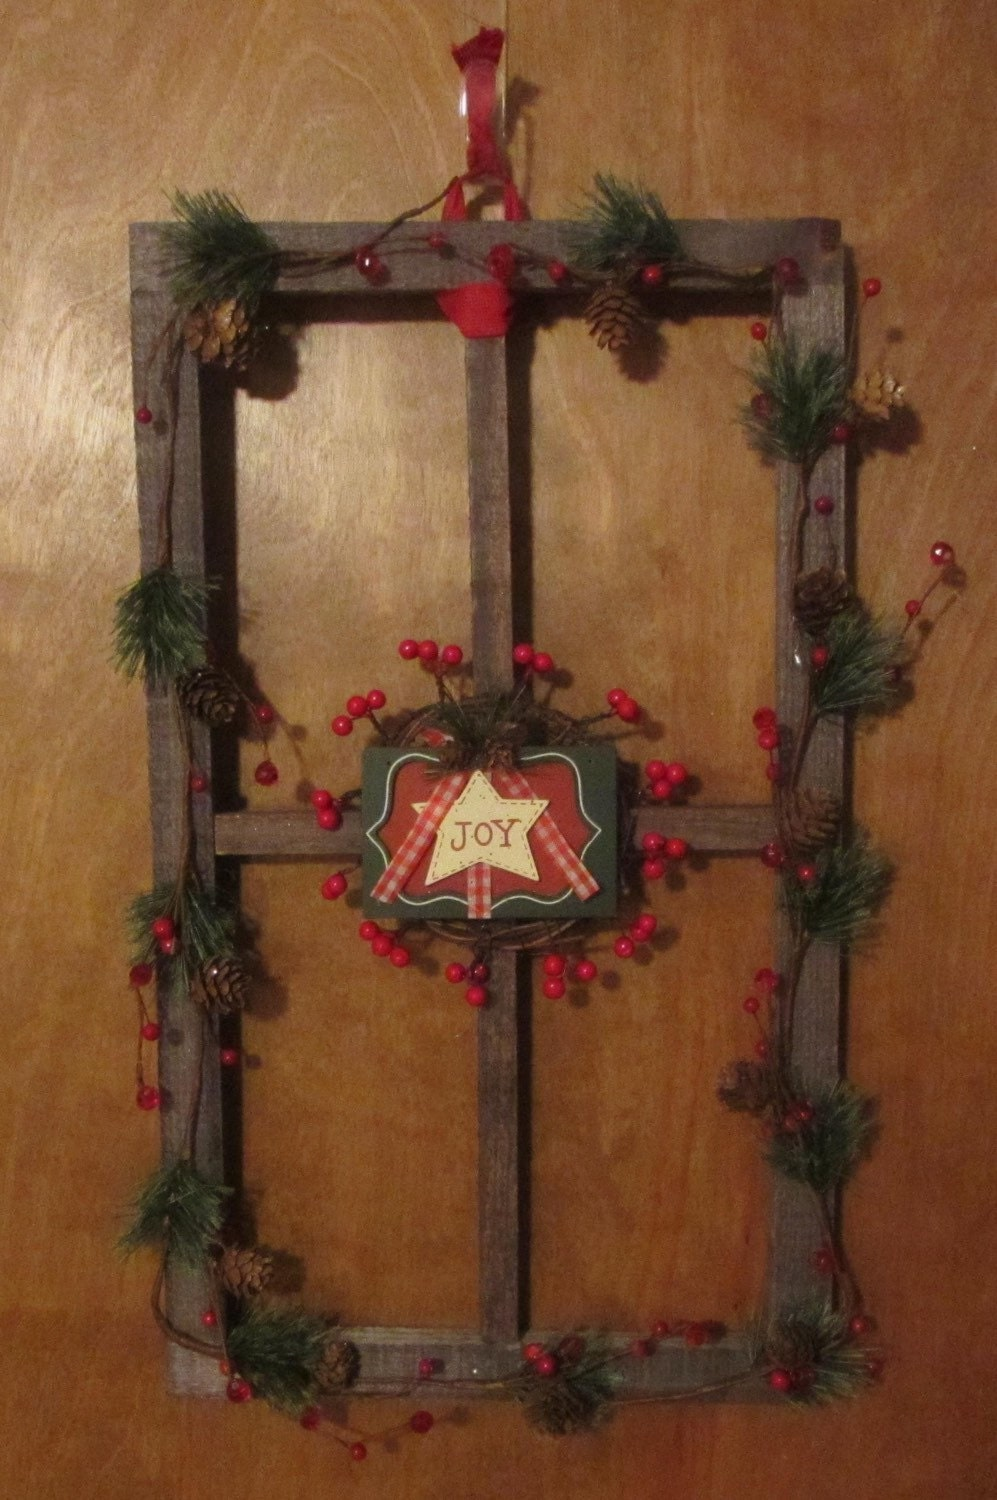 Rustic Joy Window frame Picture frame Wall Hanging Wreath Holiday Decor Winter Decoration Christmas Decor House Decor Room decor Holly Berry